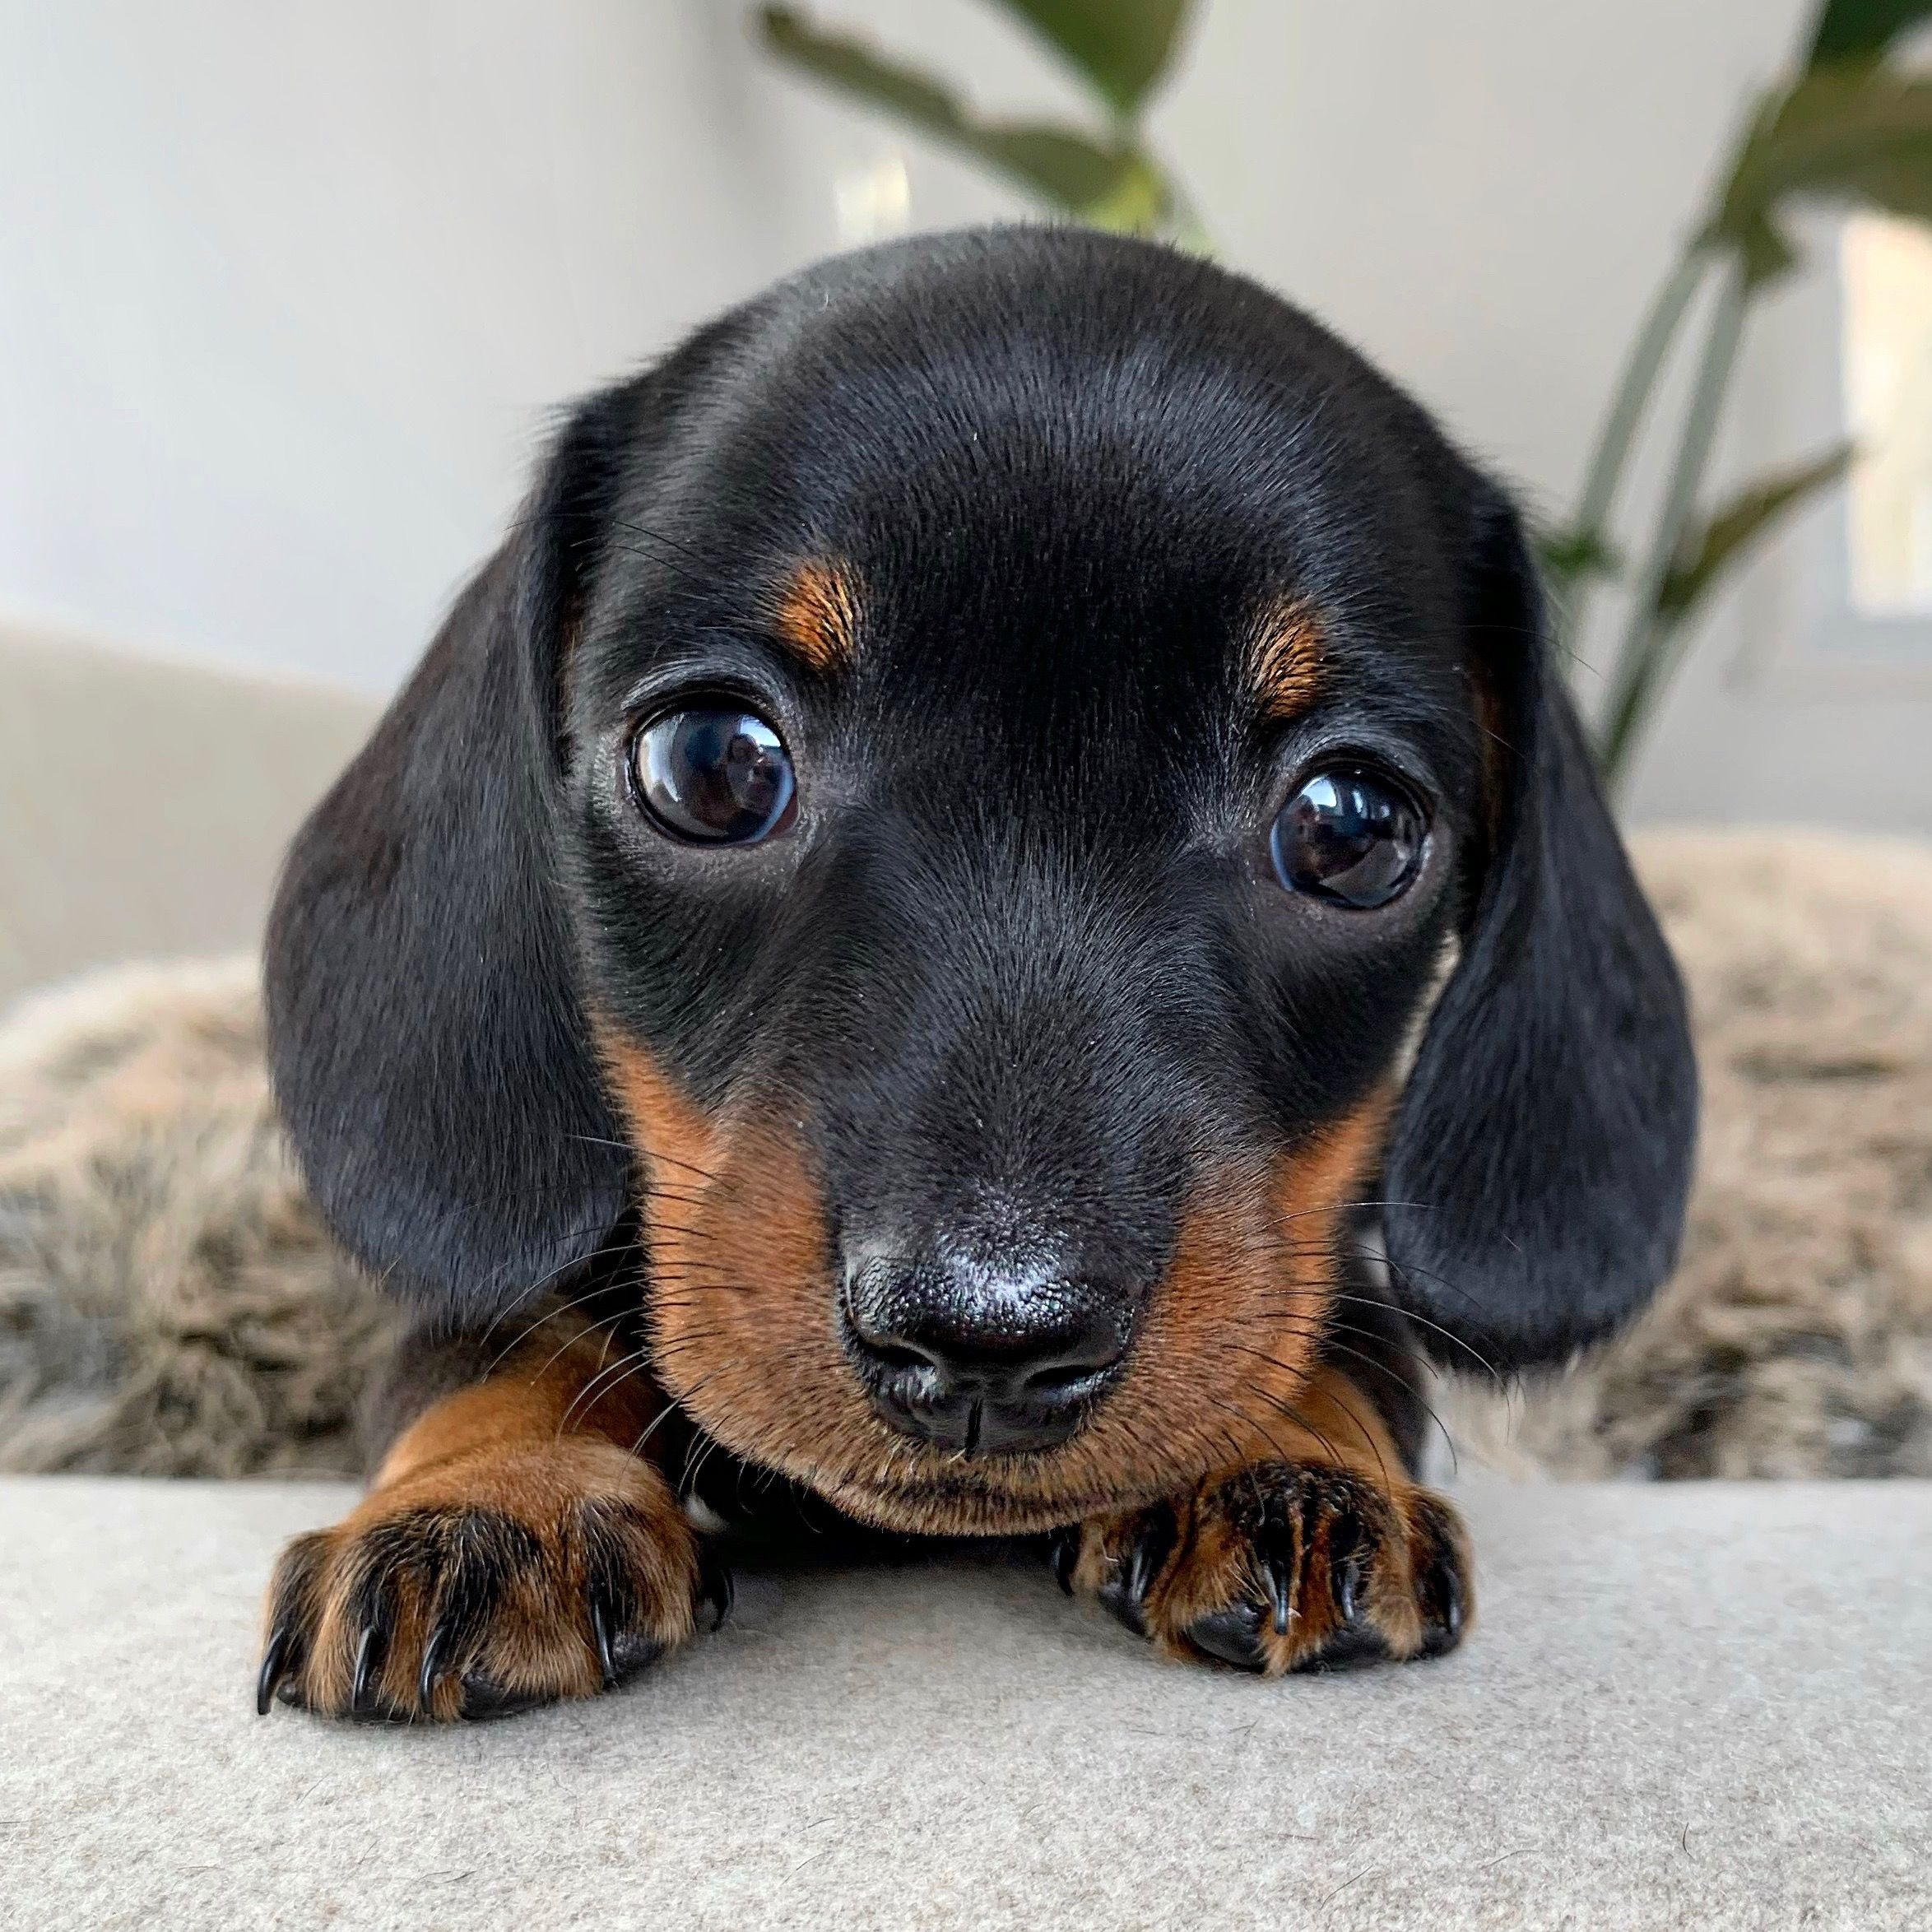 Pin By Linda Wilson On I Love Dachshunds In 2020 Dachshund